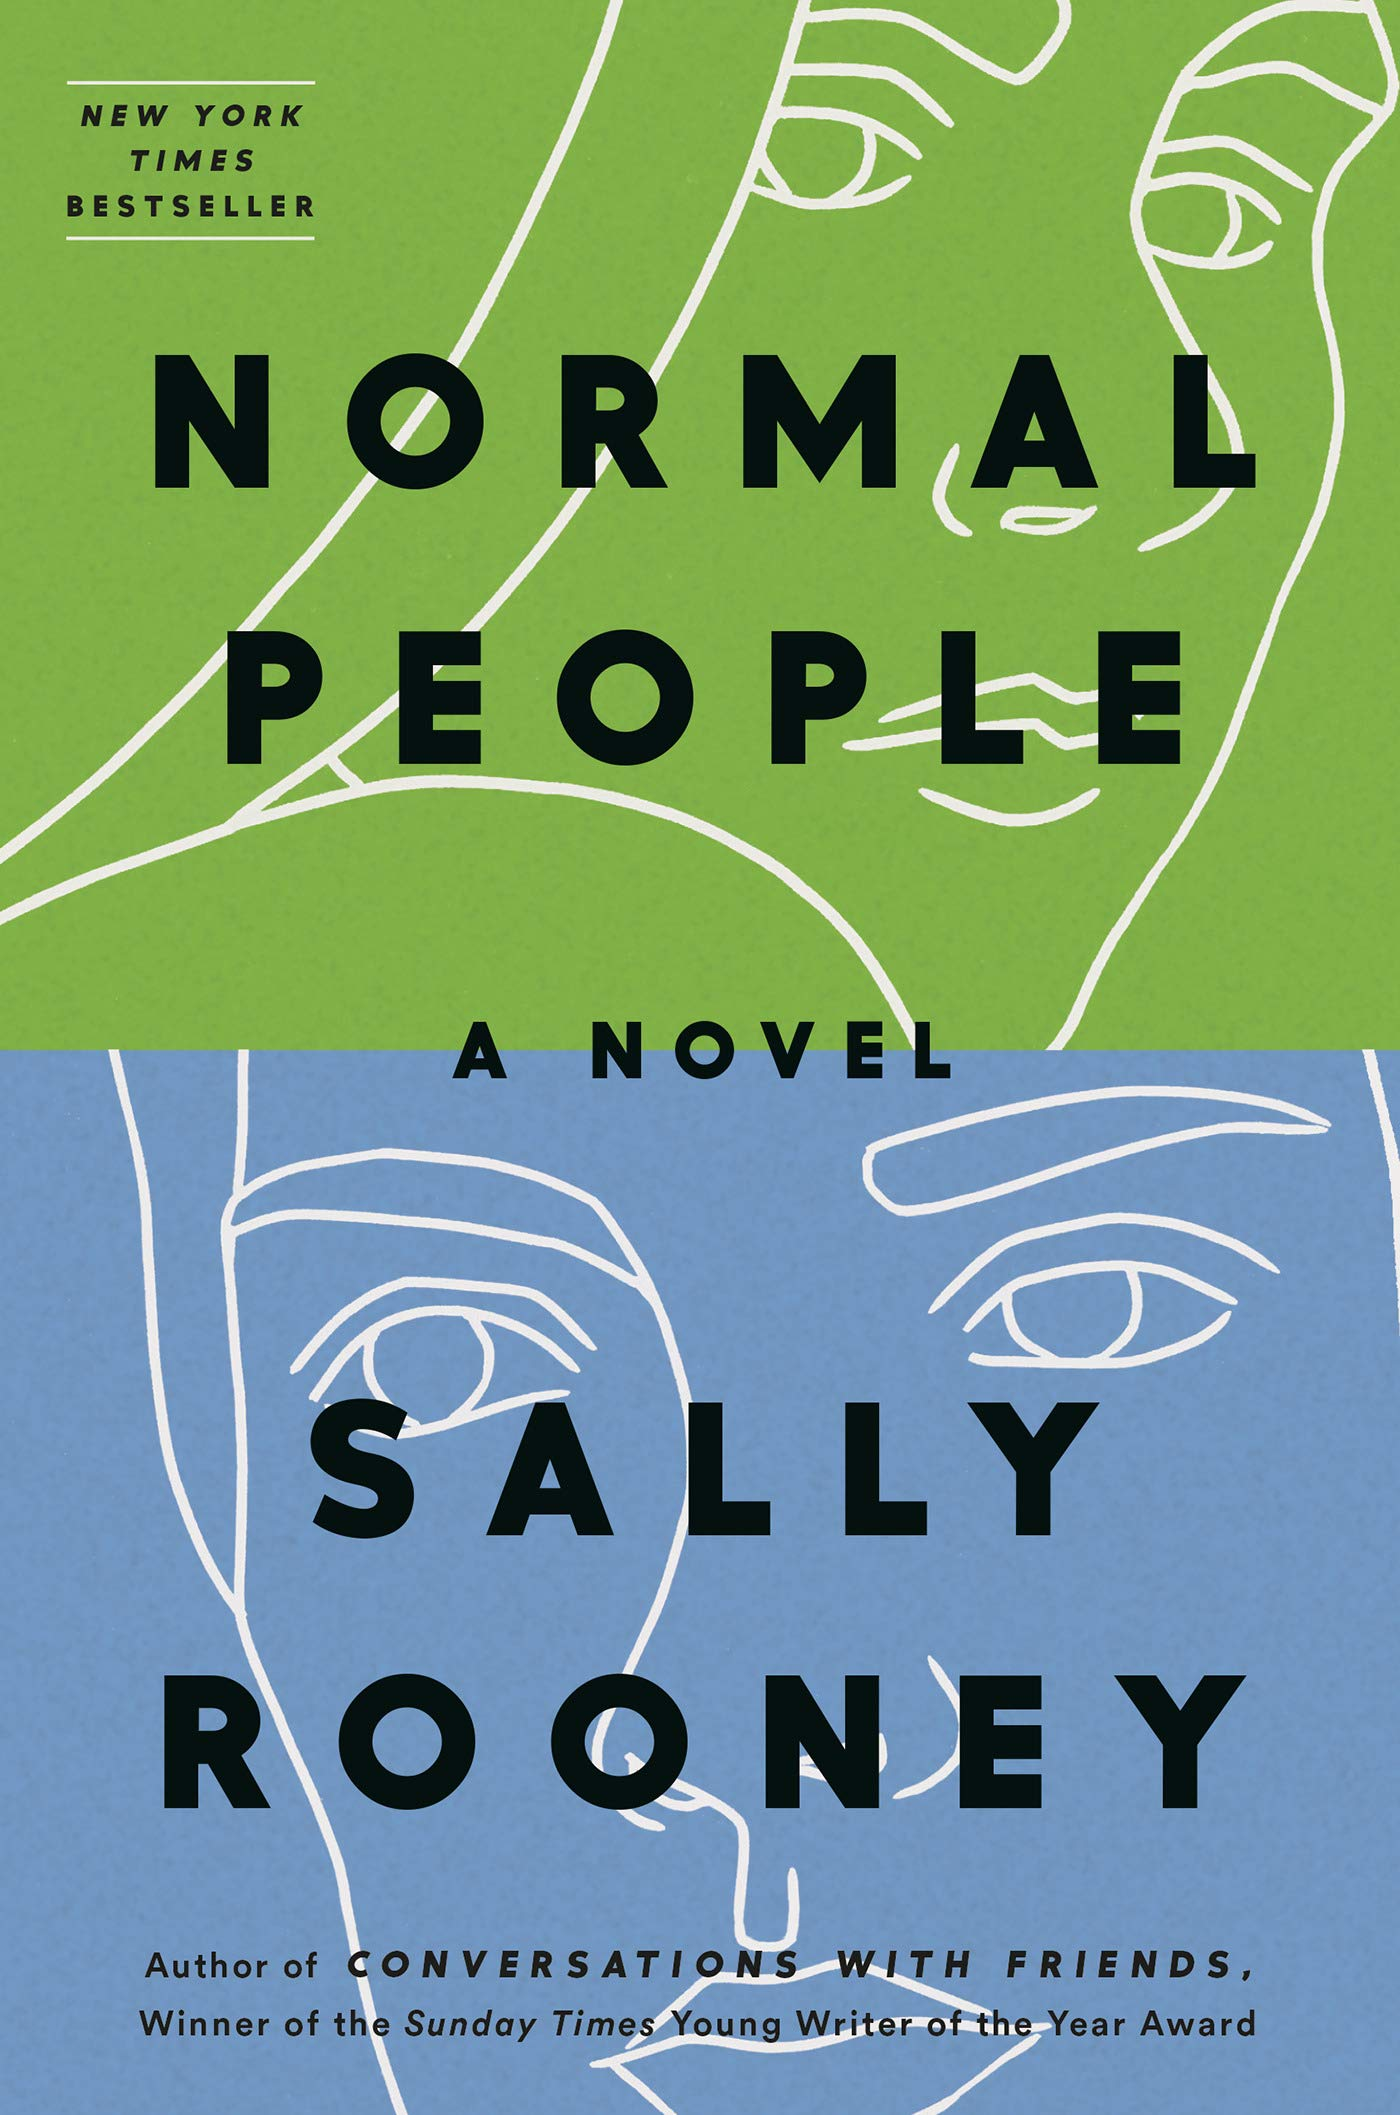 gustobeats book club for novel normal people